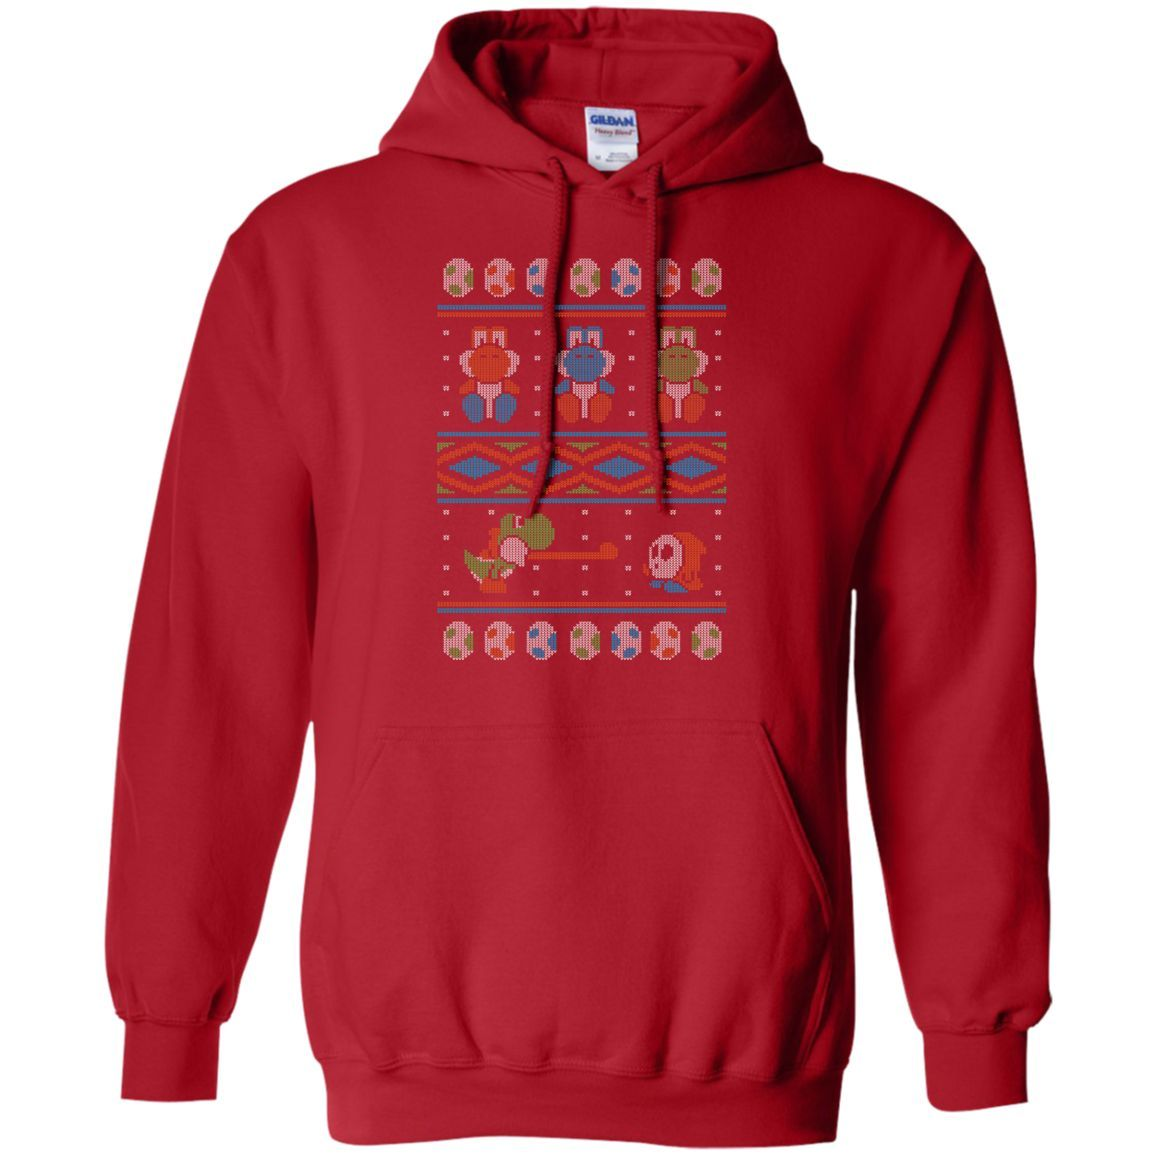 Wool Is Cool. Special Christmas Ugly Sweater Holiday Sweater T-Shirt